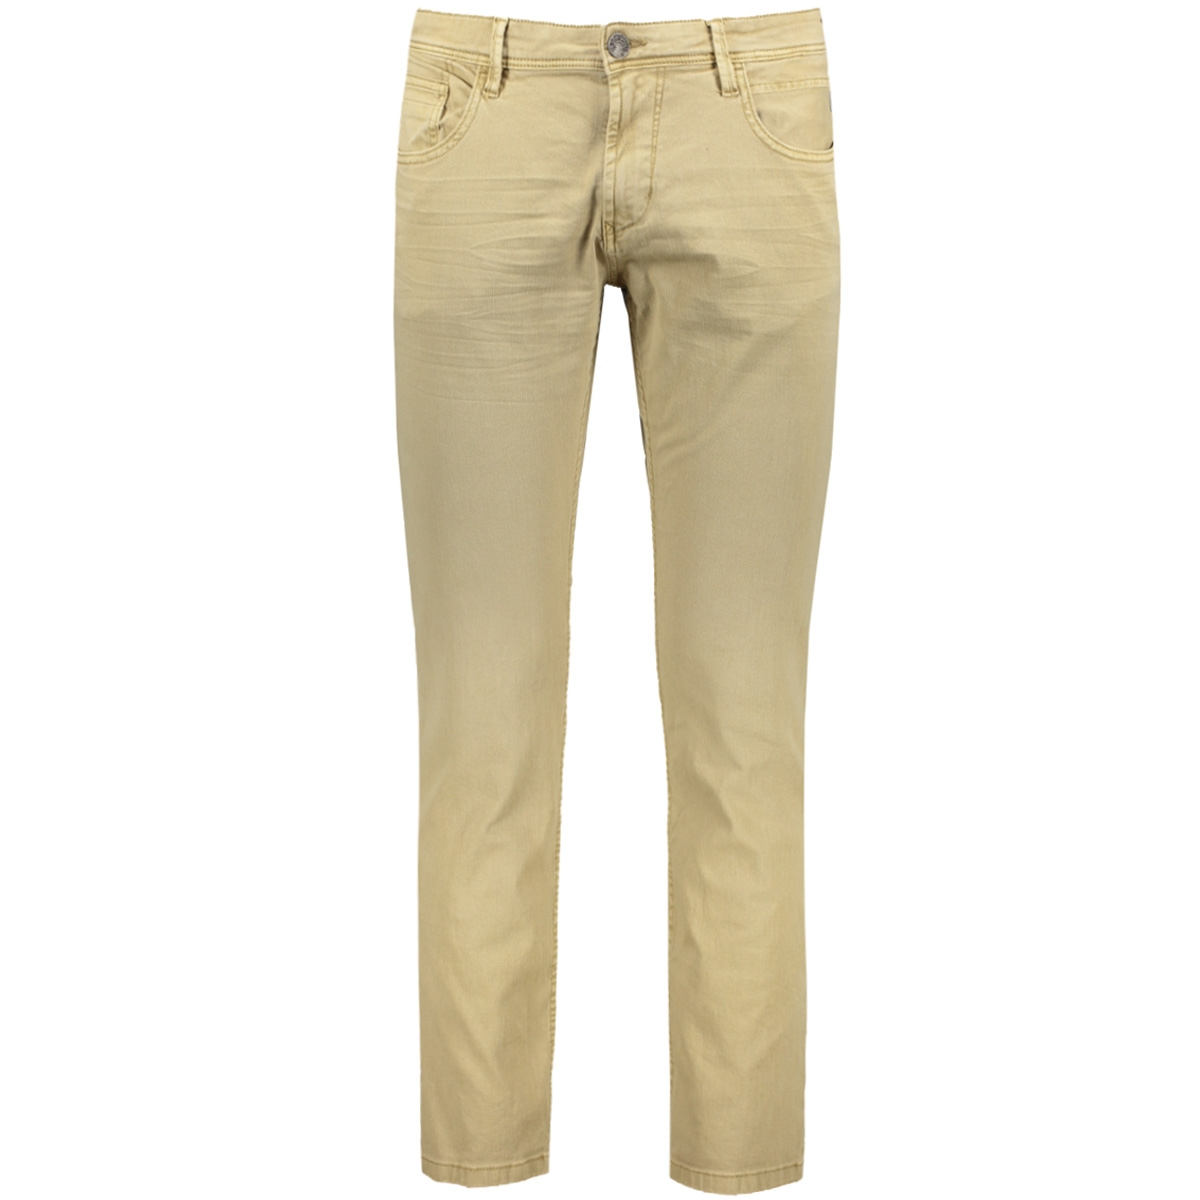 6205728.00.12 tom tailor jeans 8147